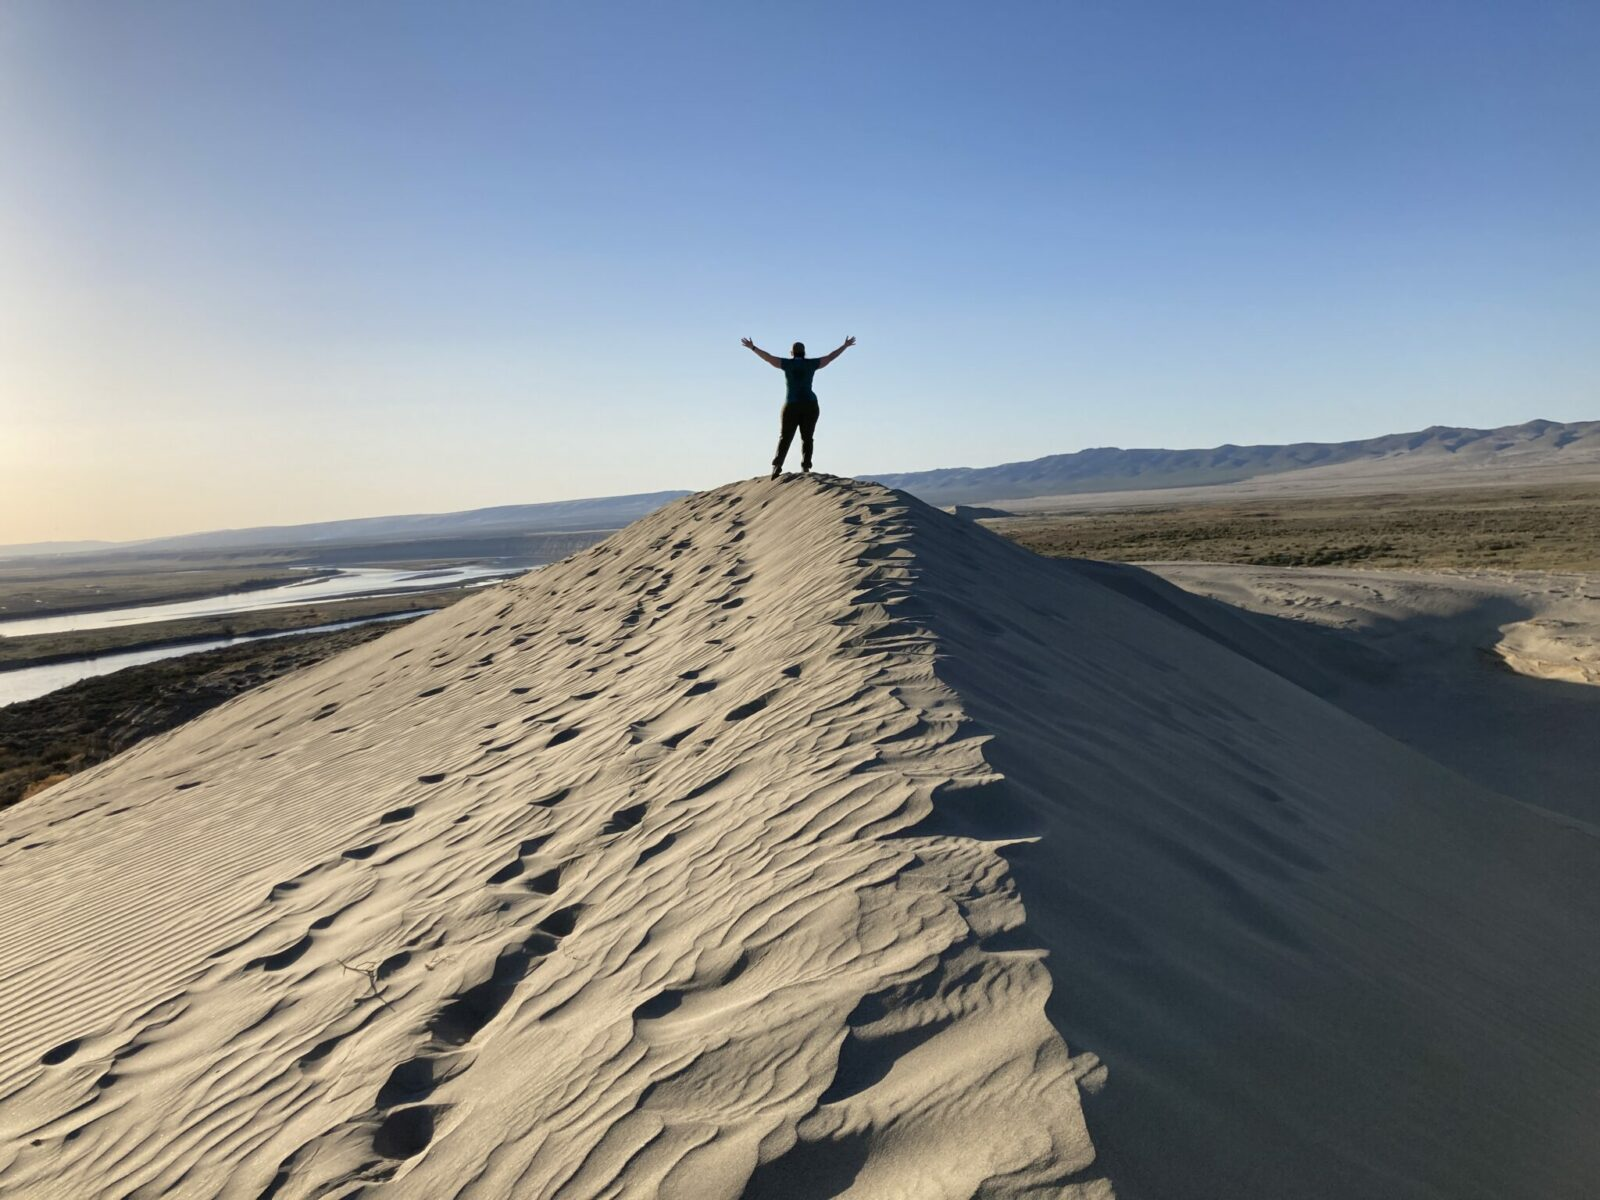 The top of a sand dune at Hanford Reach in a desert in late afternoon. A person stands on the top of the dune with their hands in the air. In the distance are brown mountains and a river